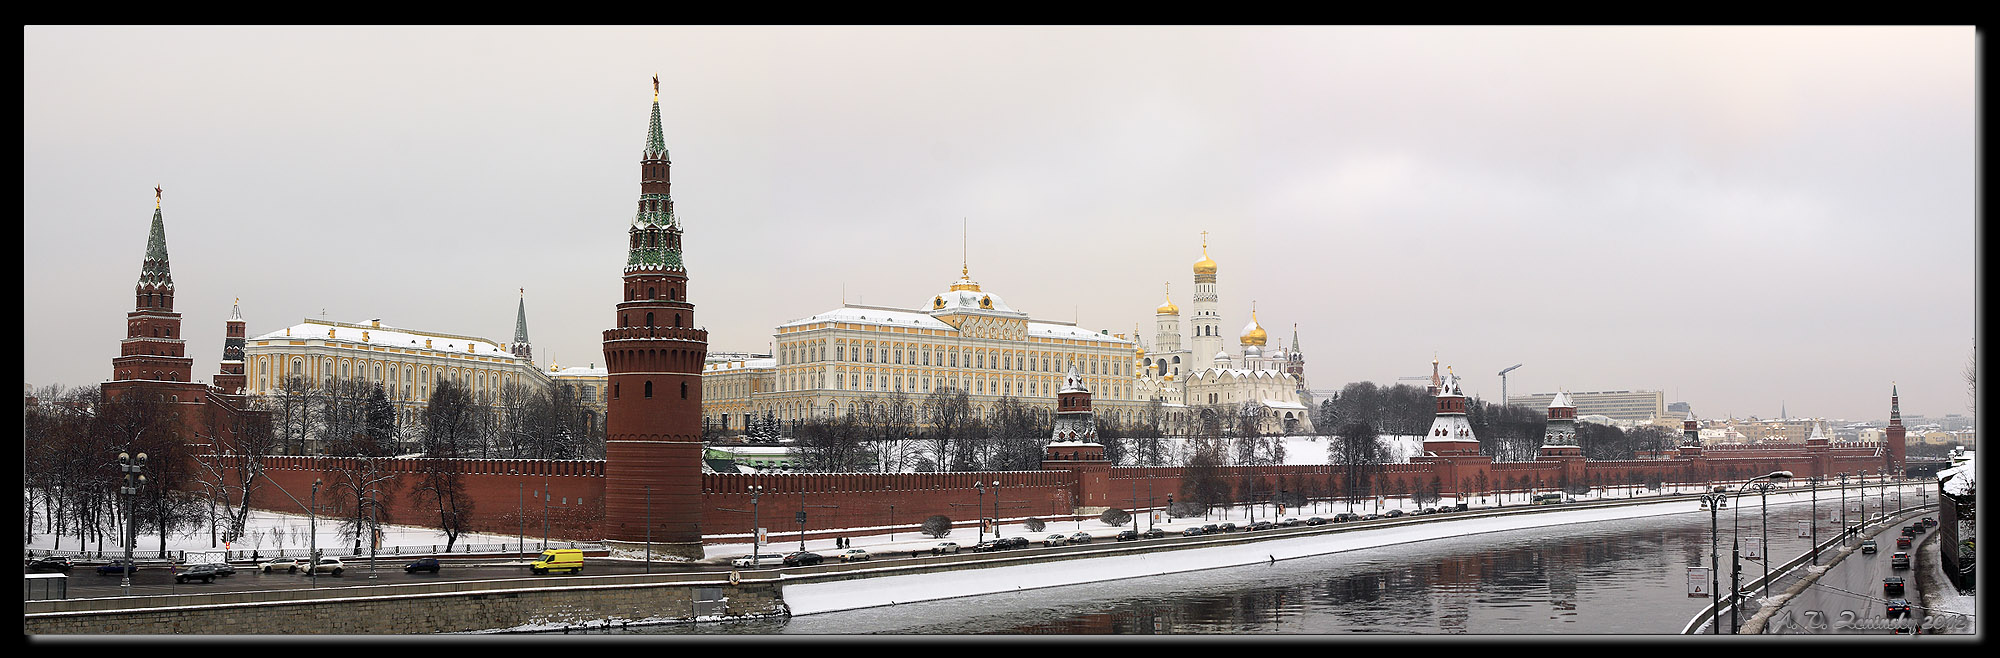 "photo ""Panorama of the Moscow Kremlin."" tags: architecture, landscape, panoramic, Europe, building, clouds, road, temple, tower, water, winter"